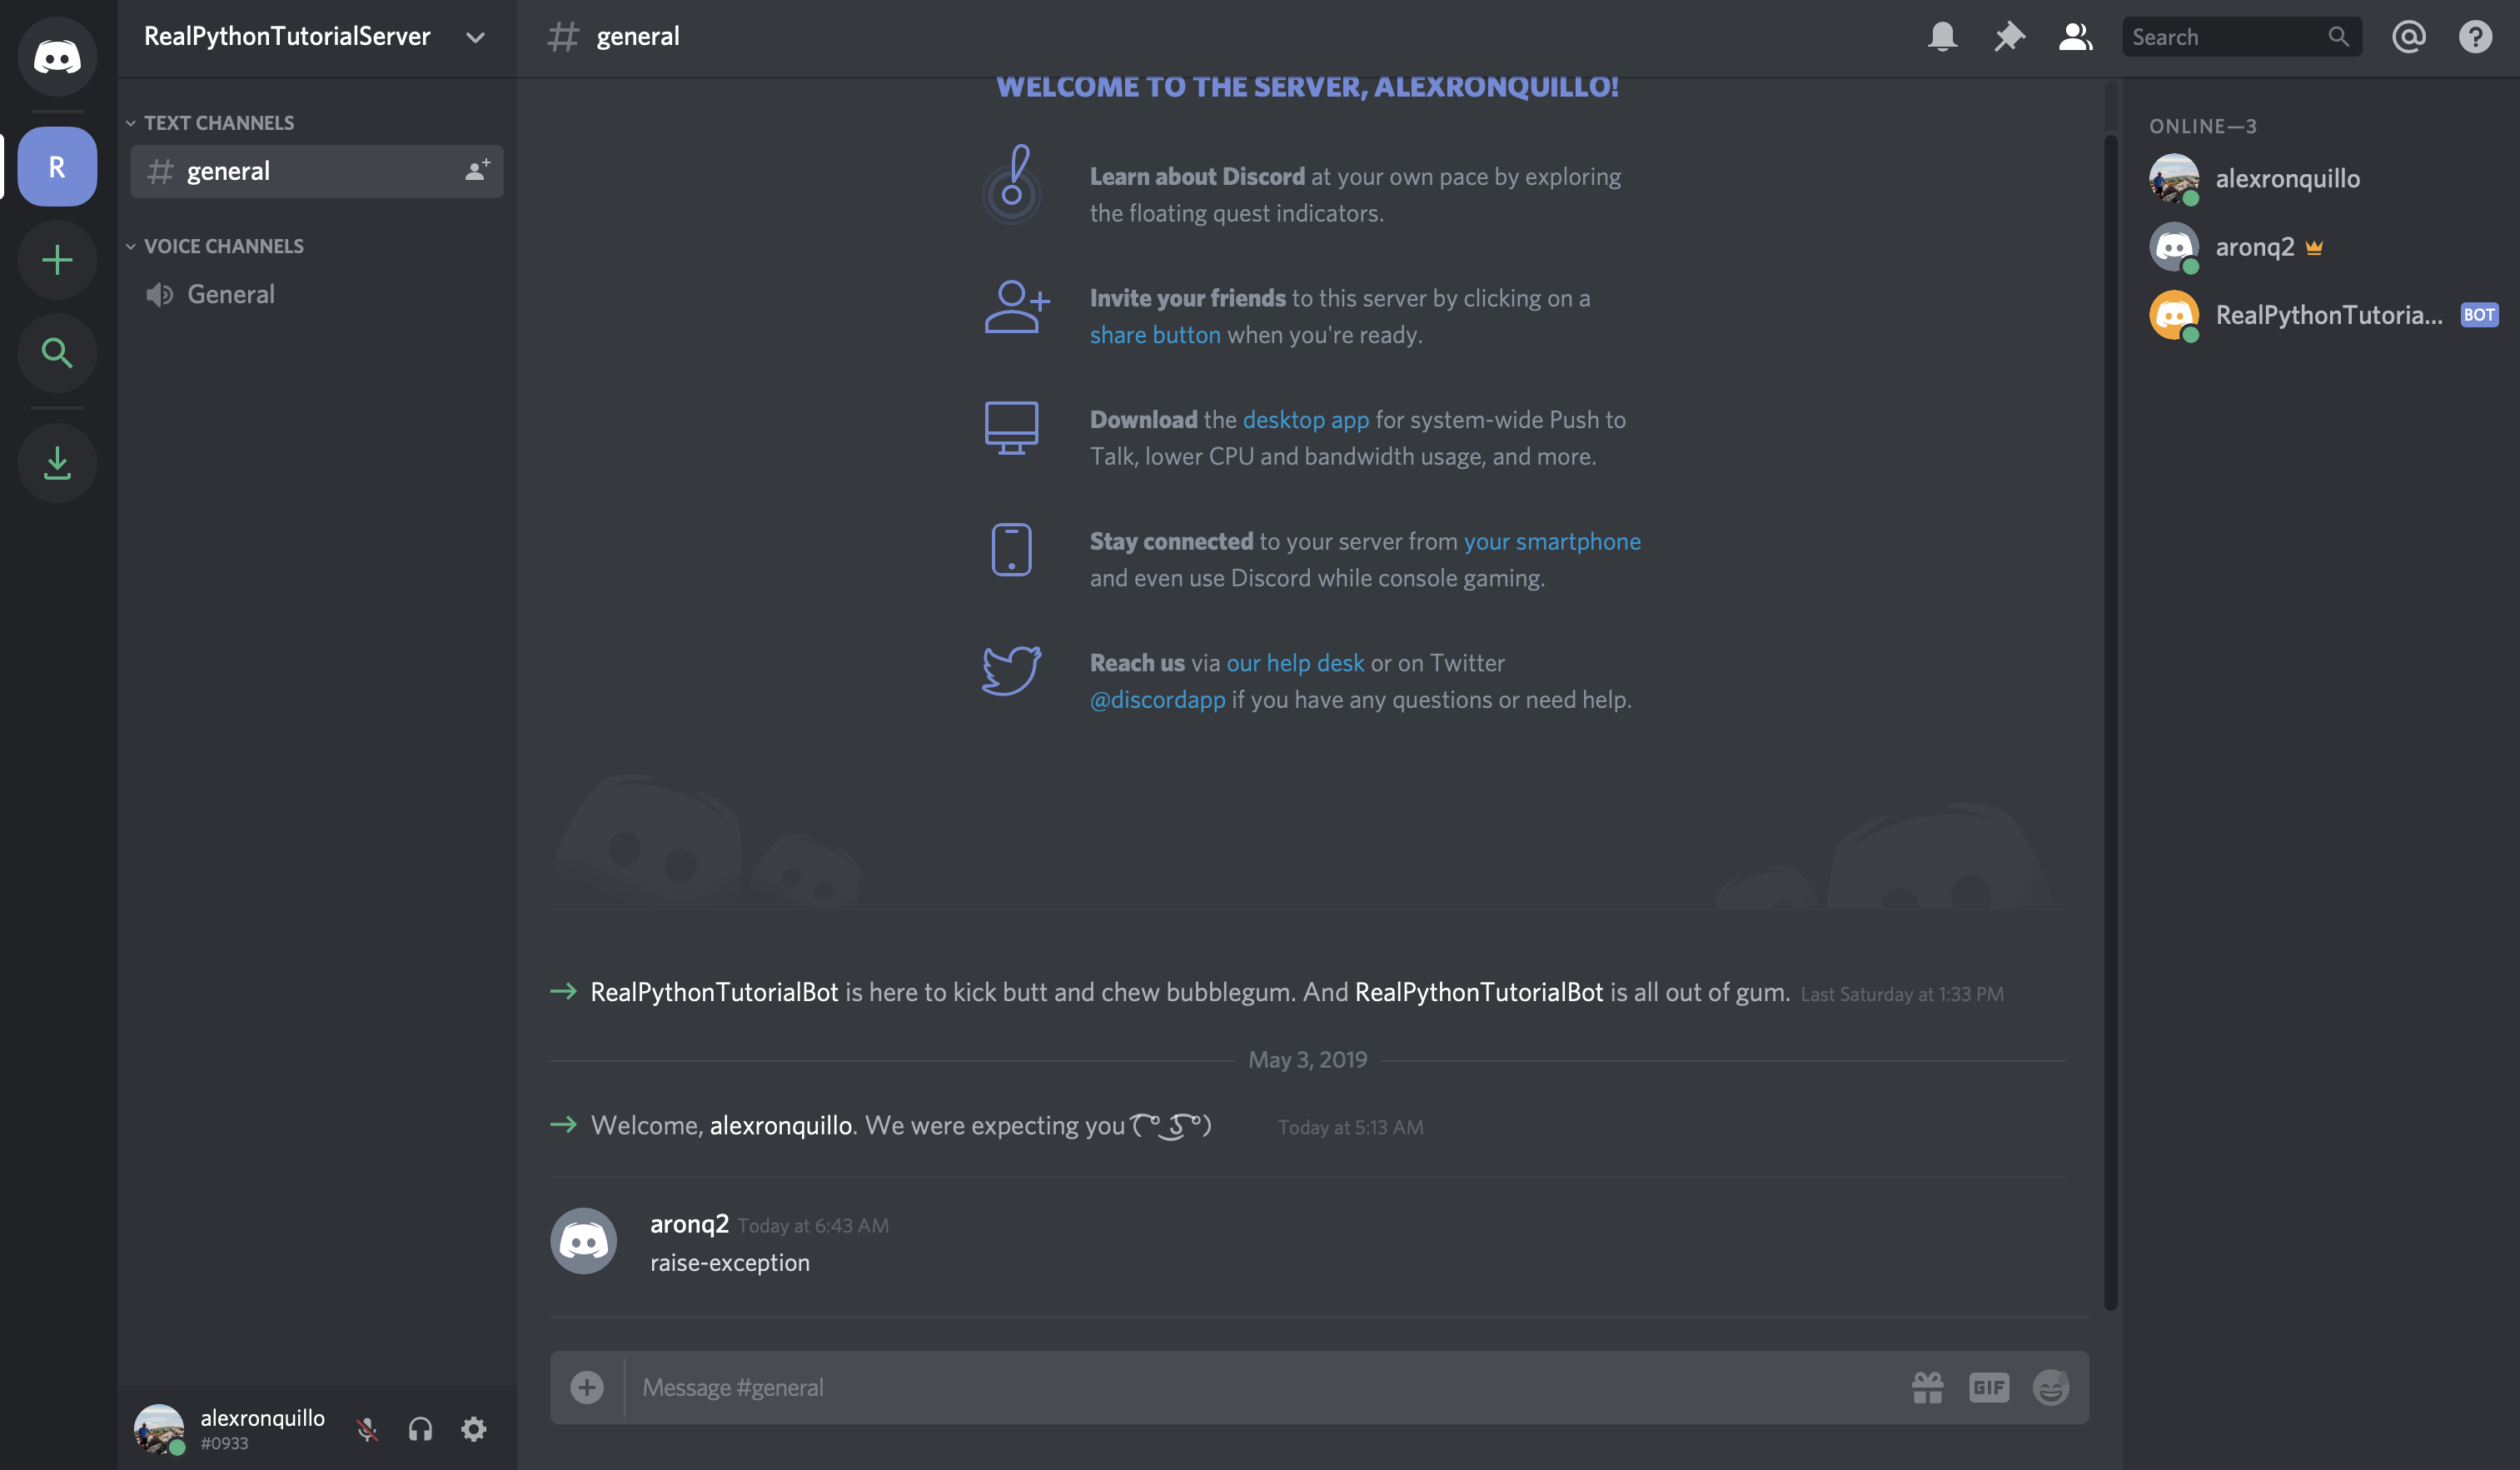 Discord: Raise Exception Message